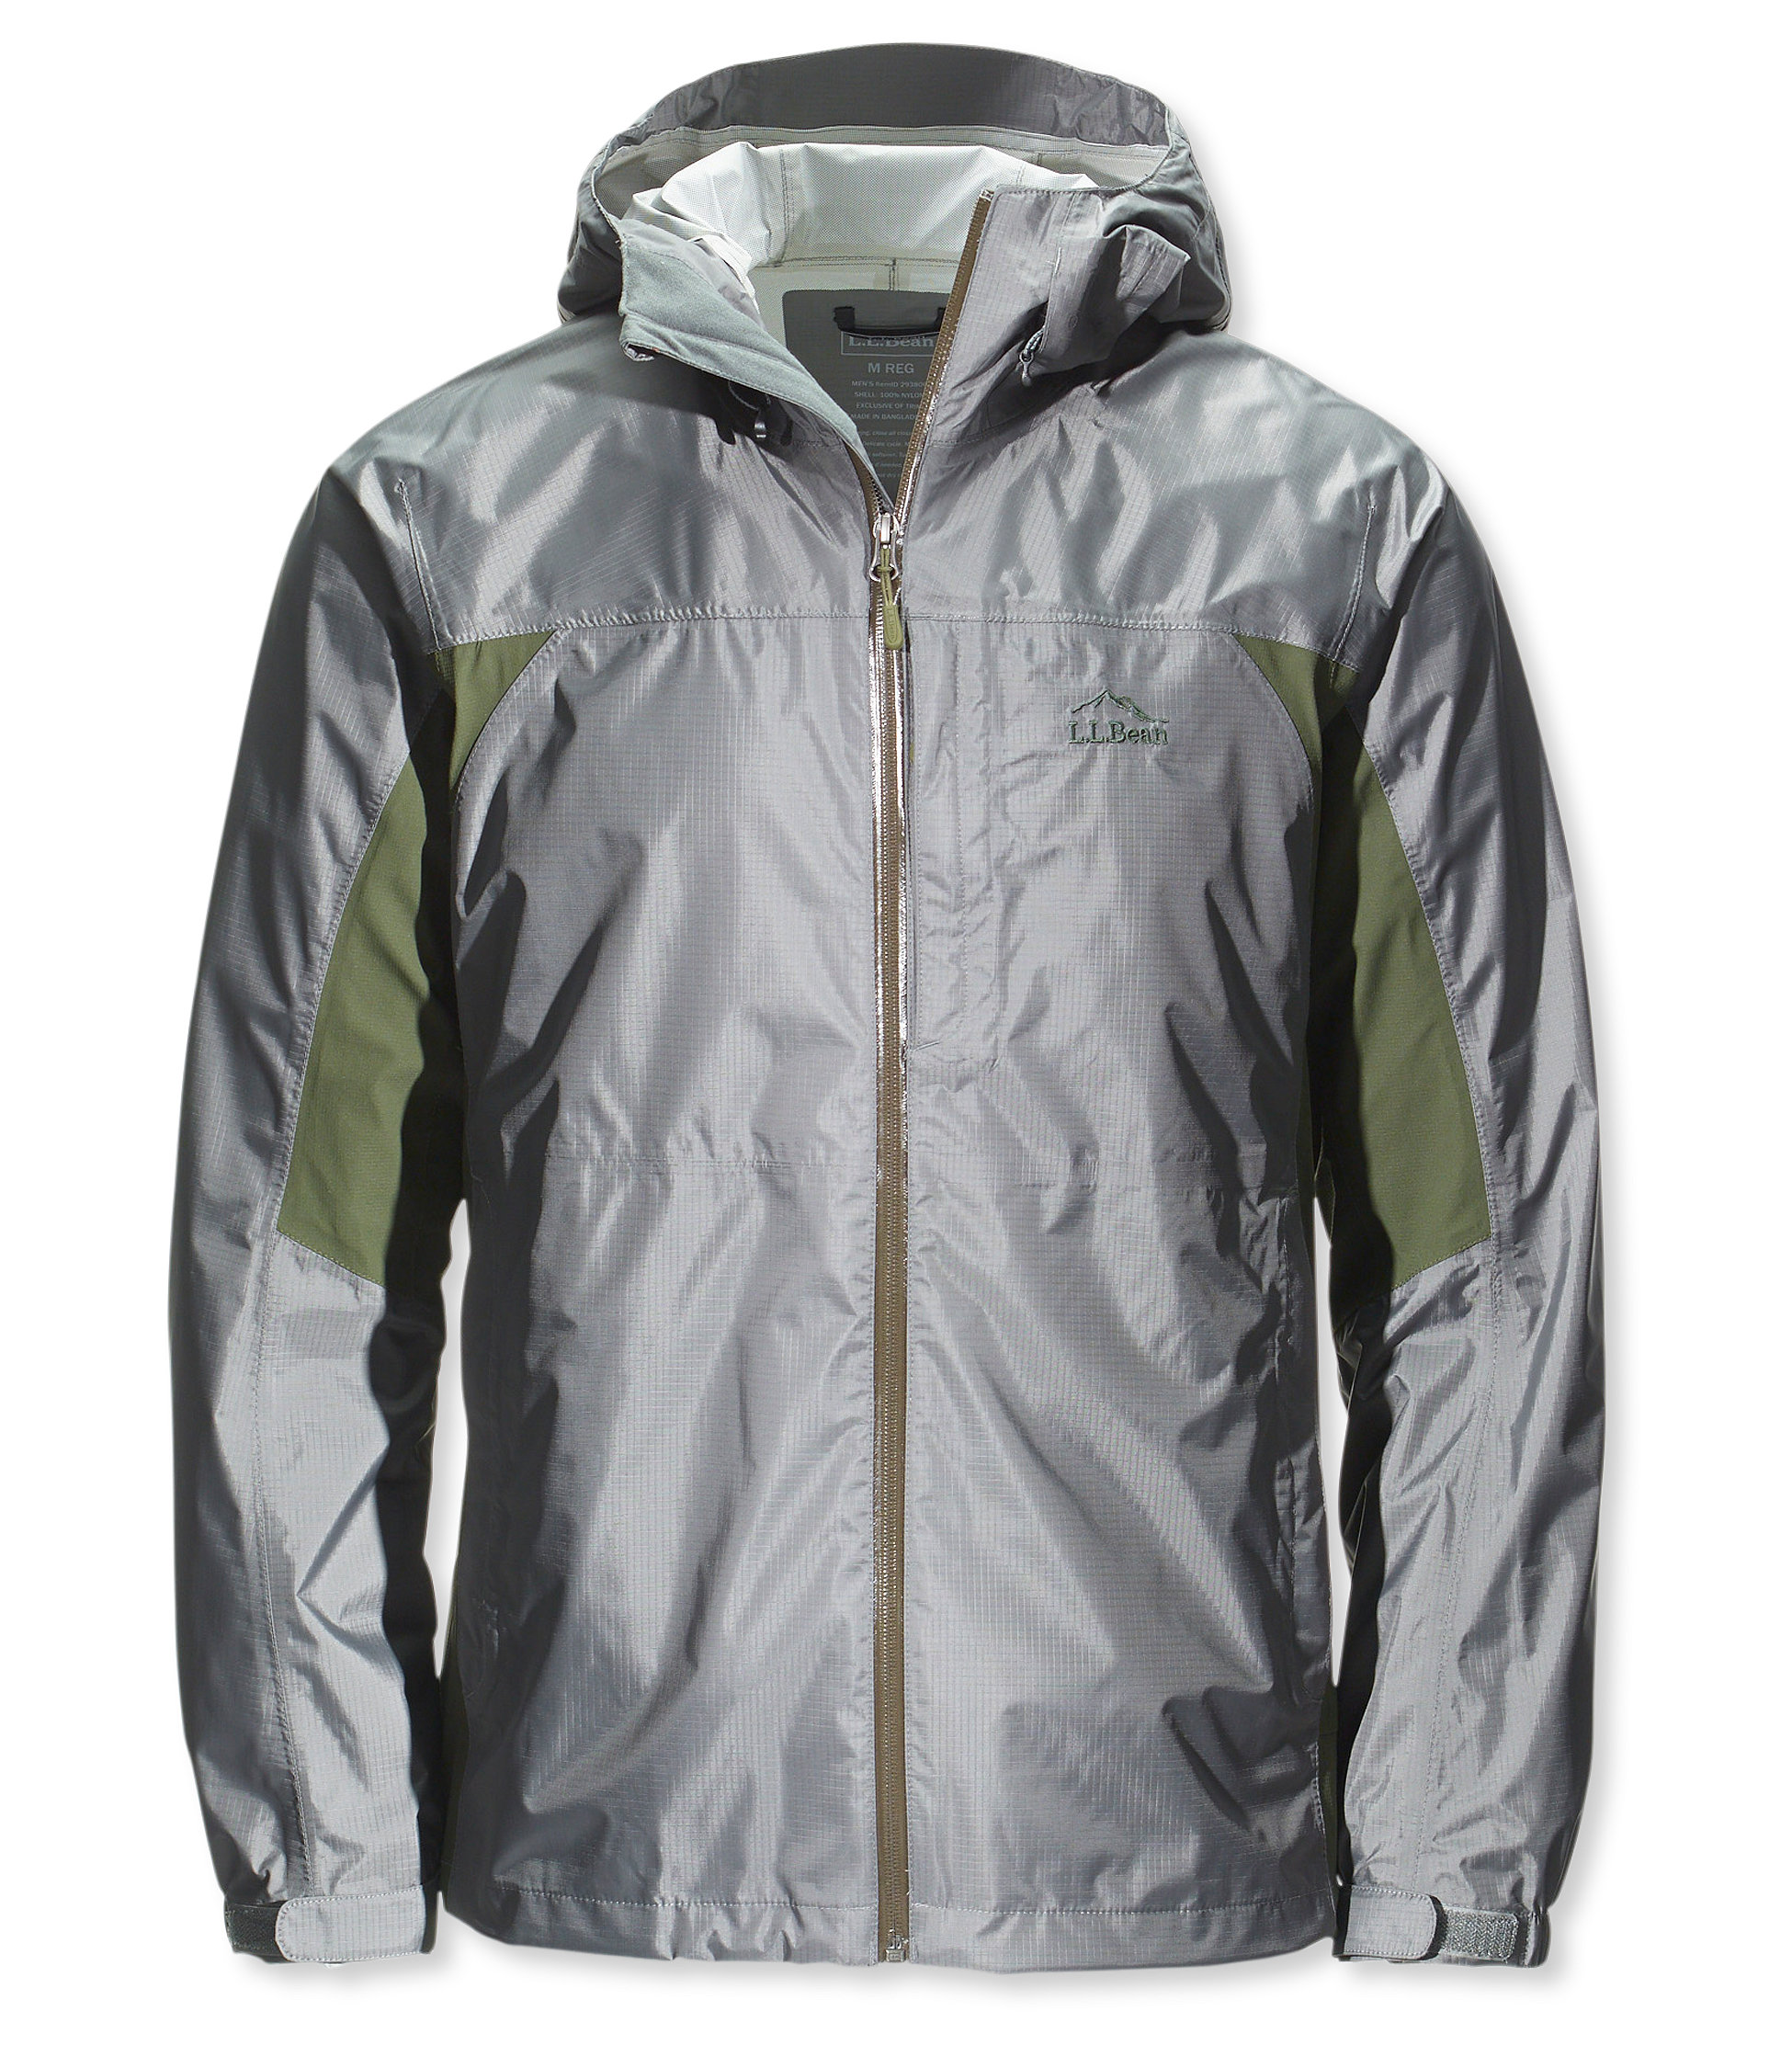 L.L.Bean Cloudburst Rain Jacket